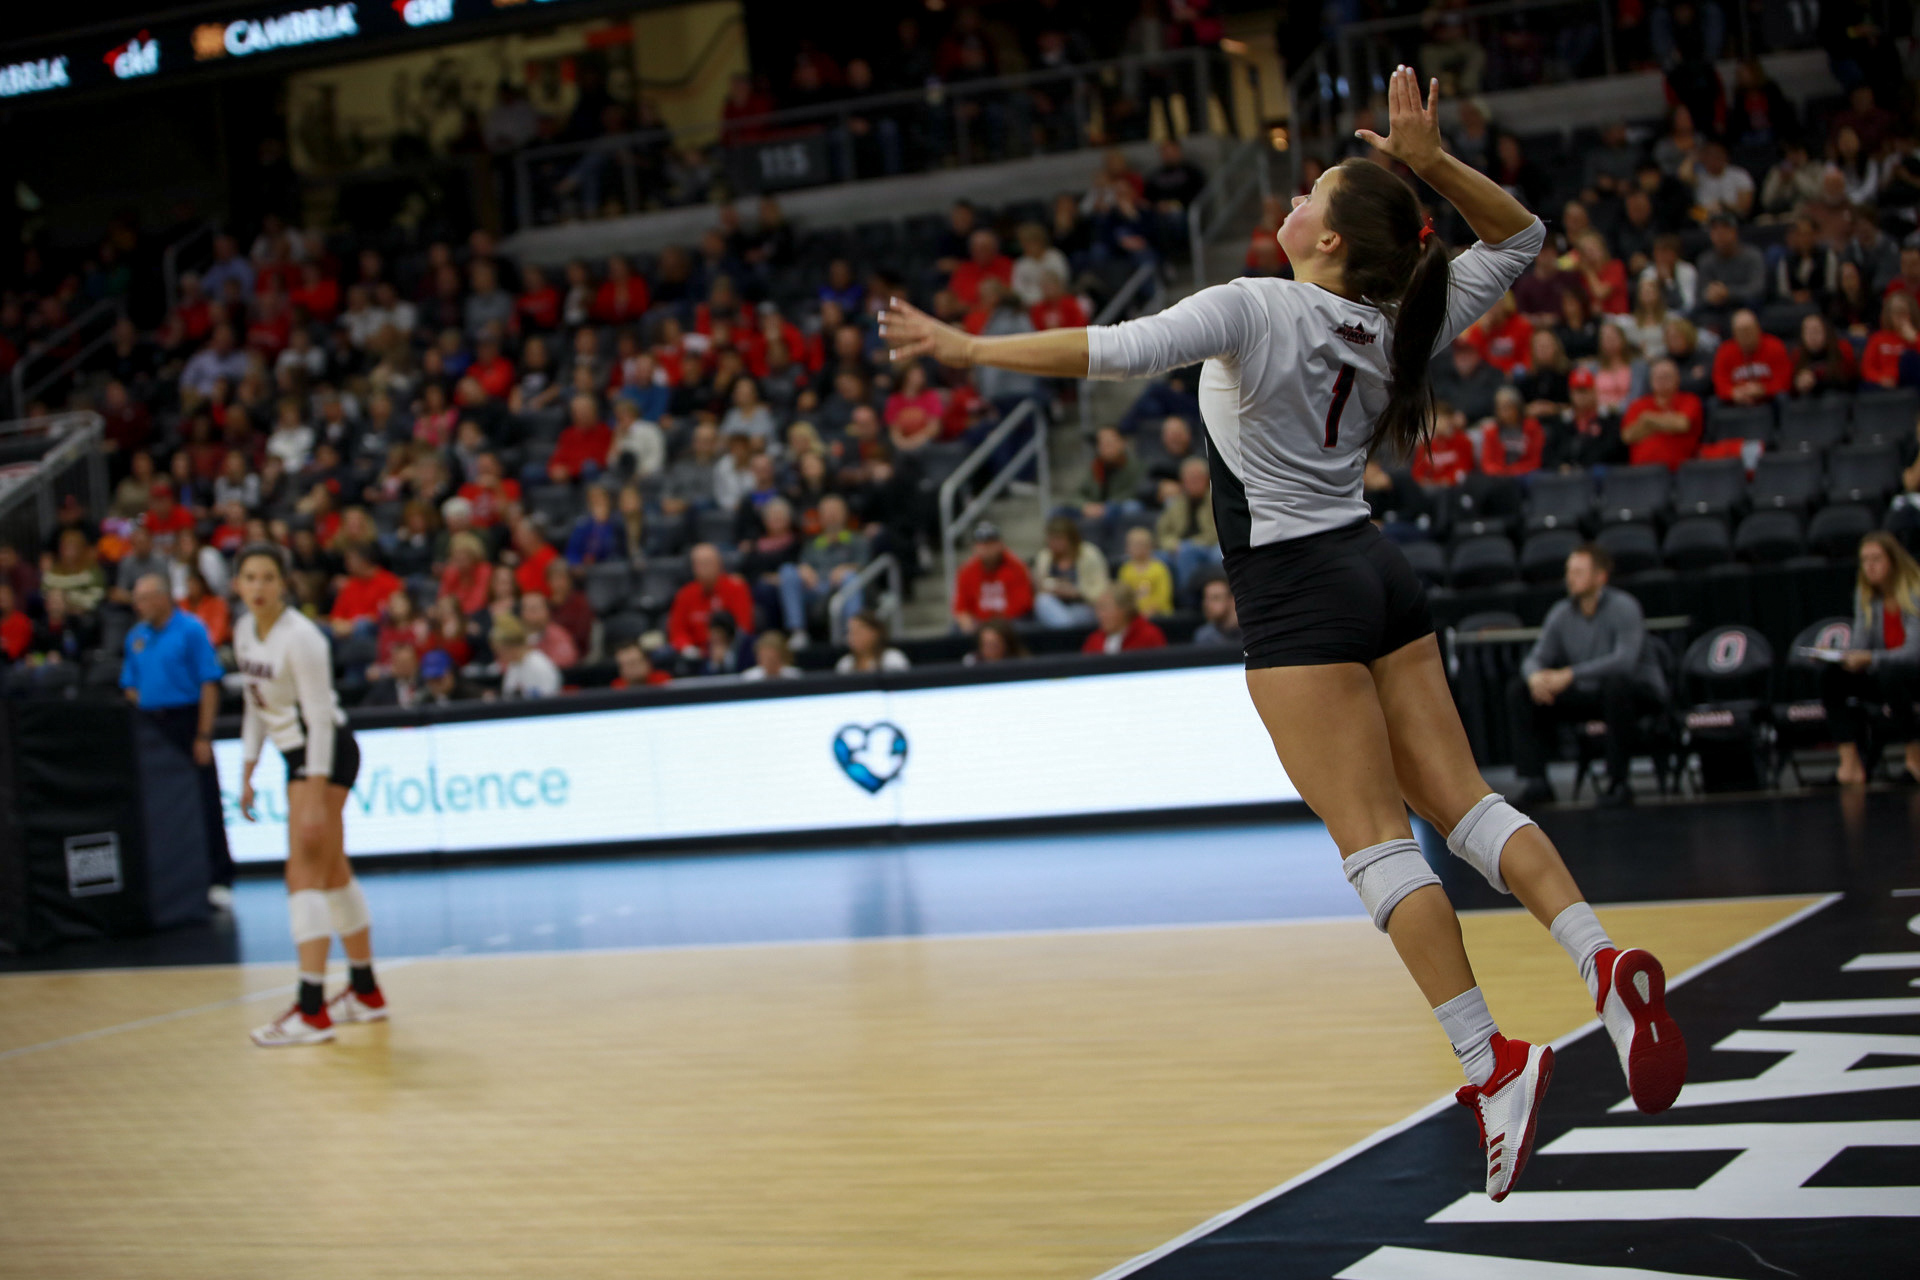 A UNO volleyball player is serving the ball